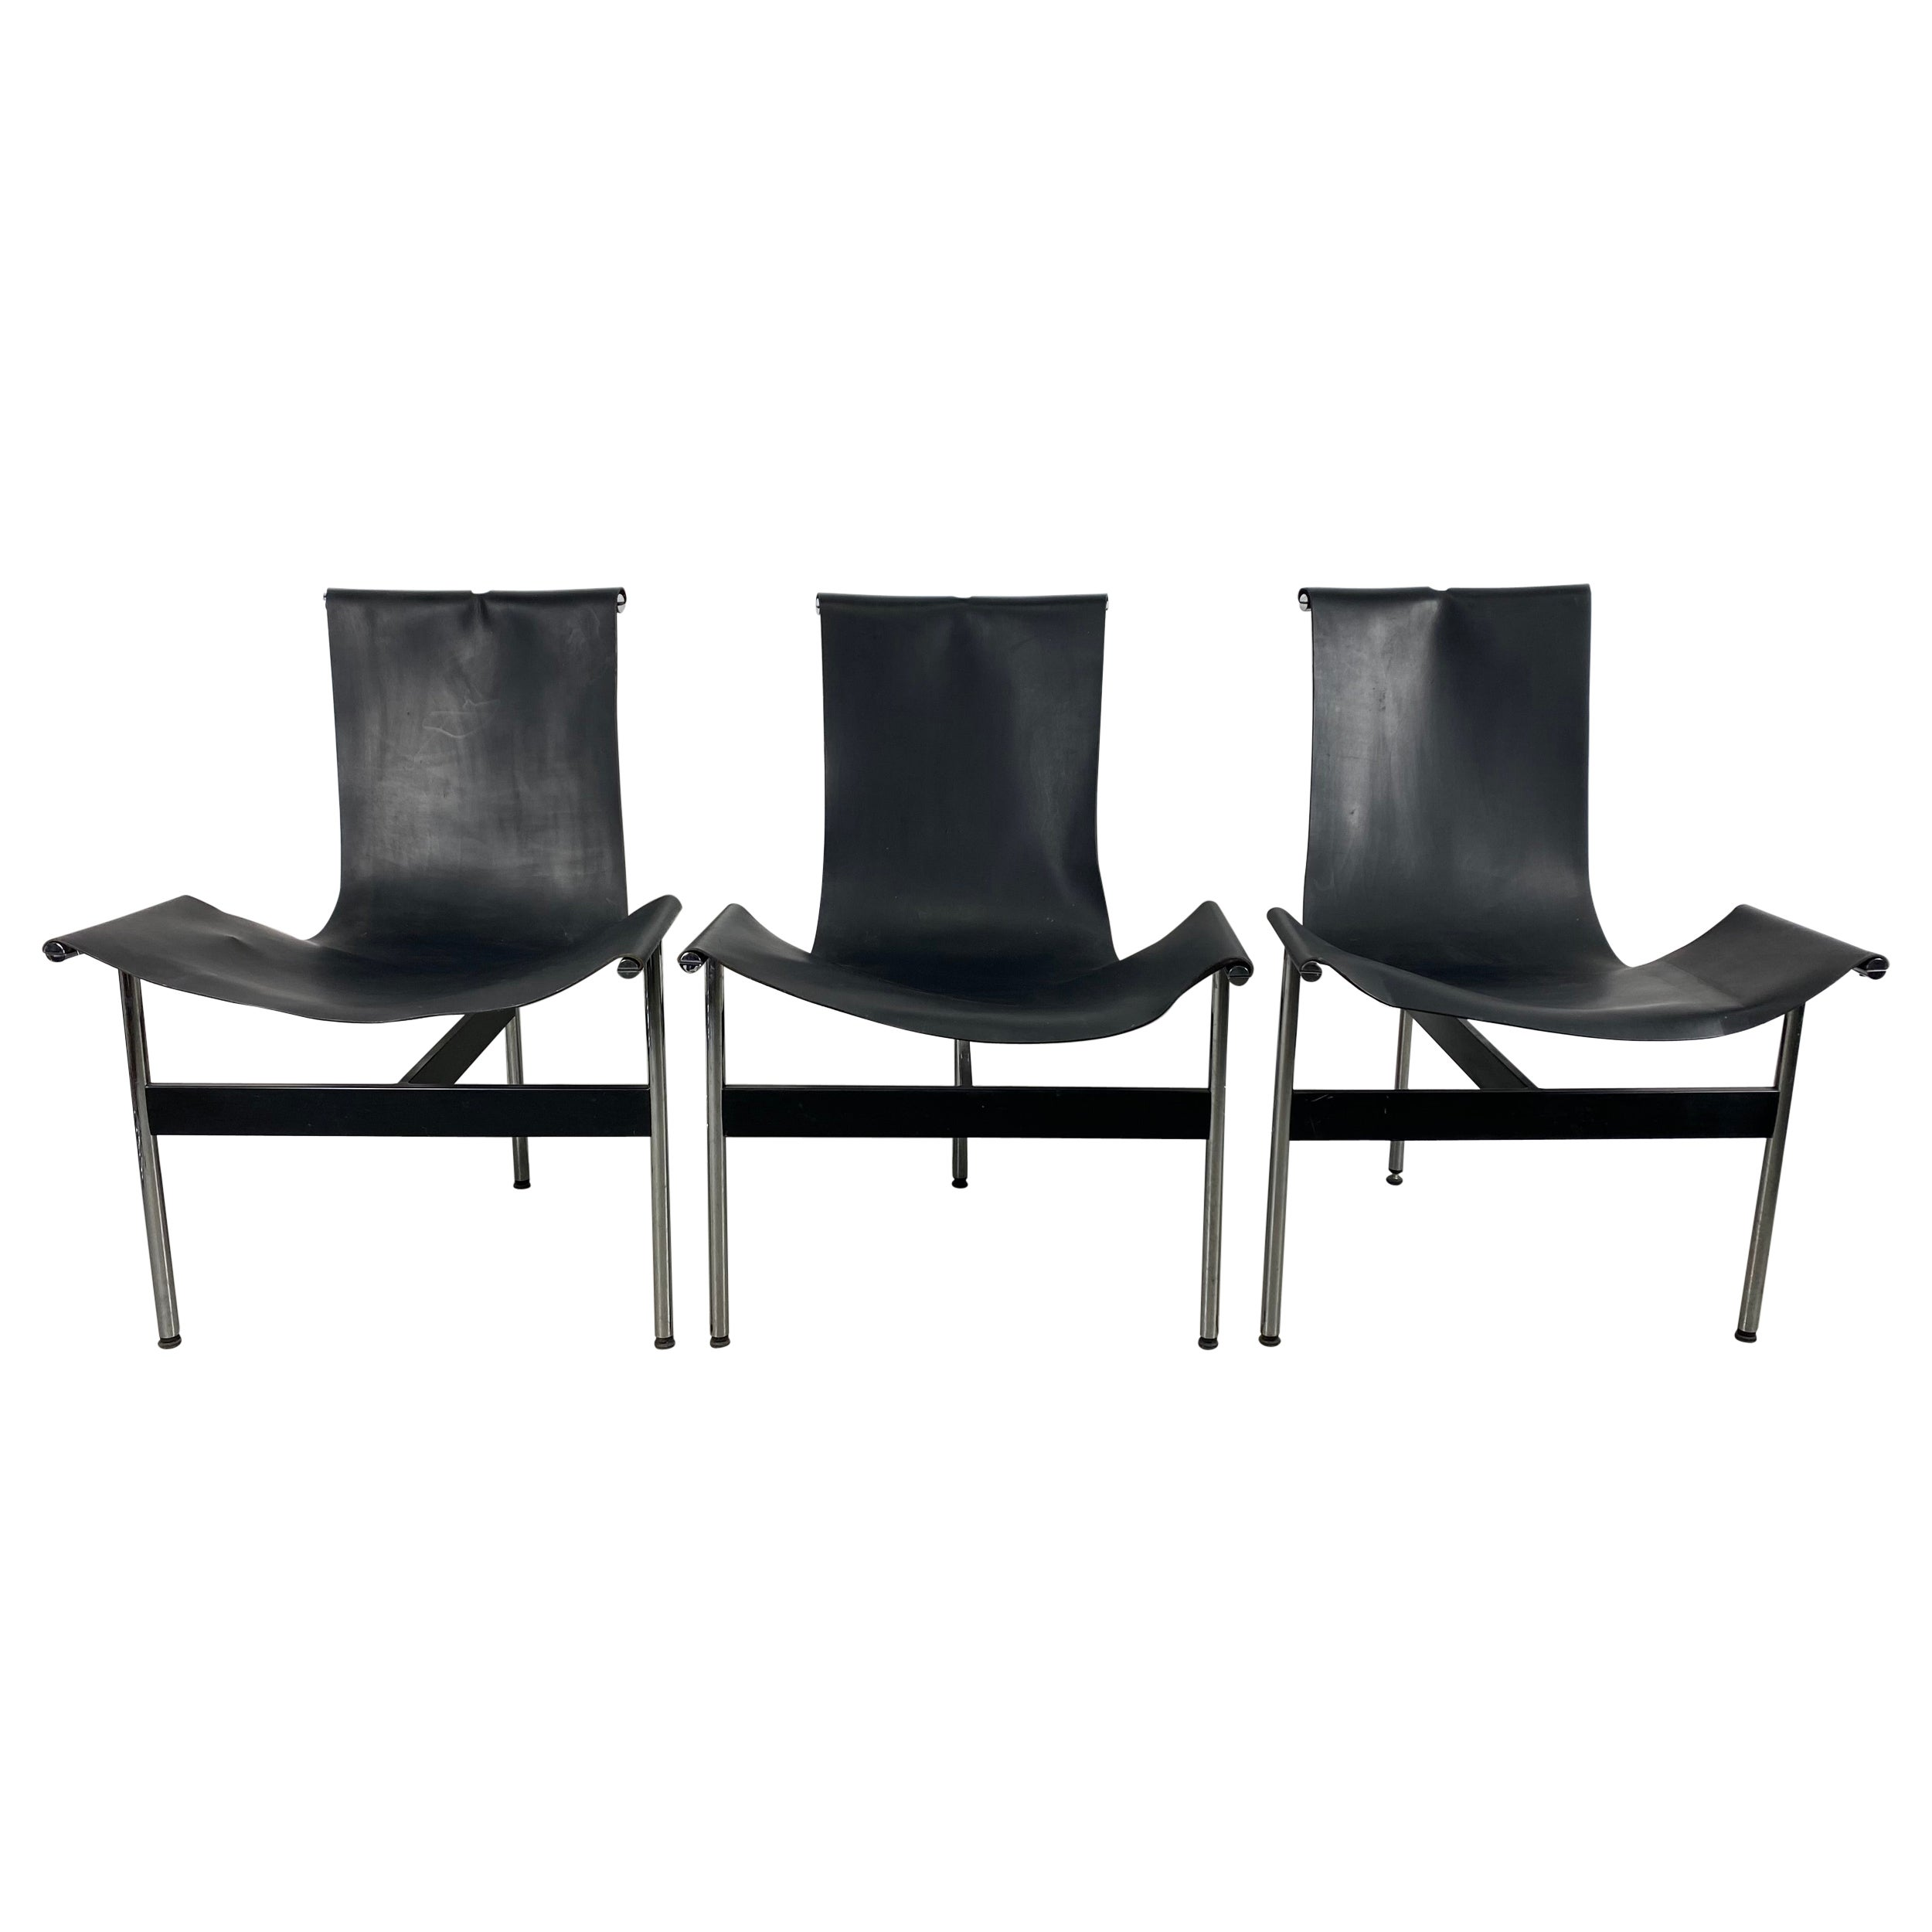 Classic 1960s Laverne T-Chair by Katavolos, Littell and Kelley